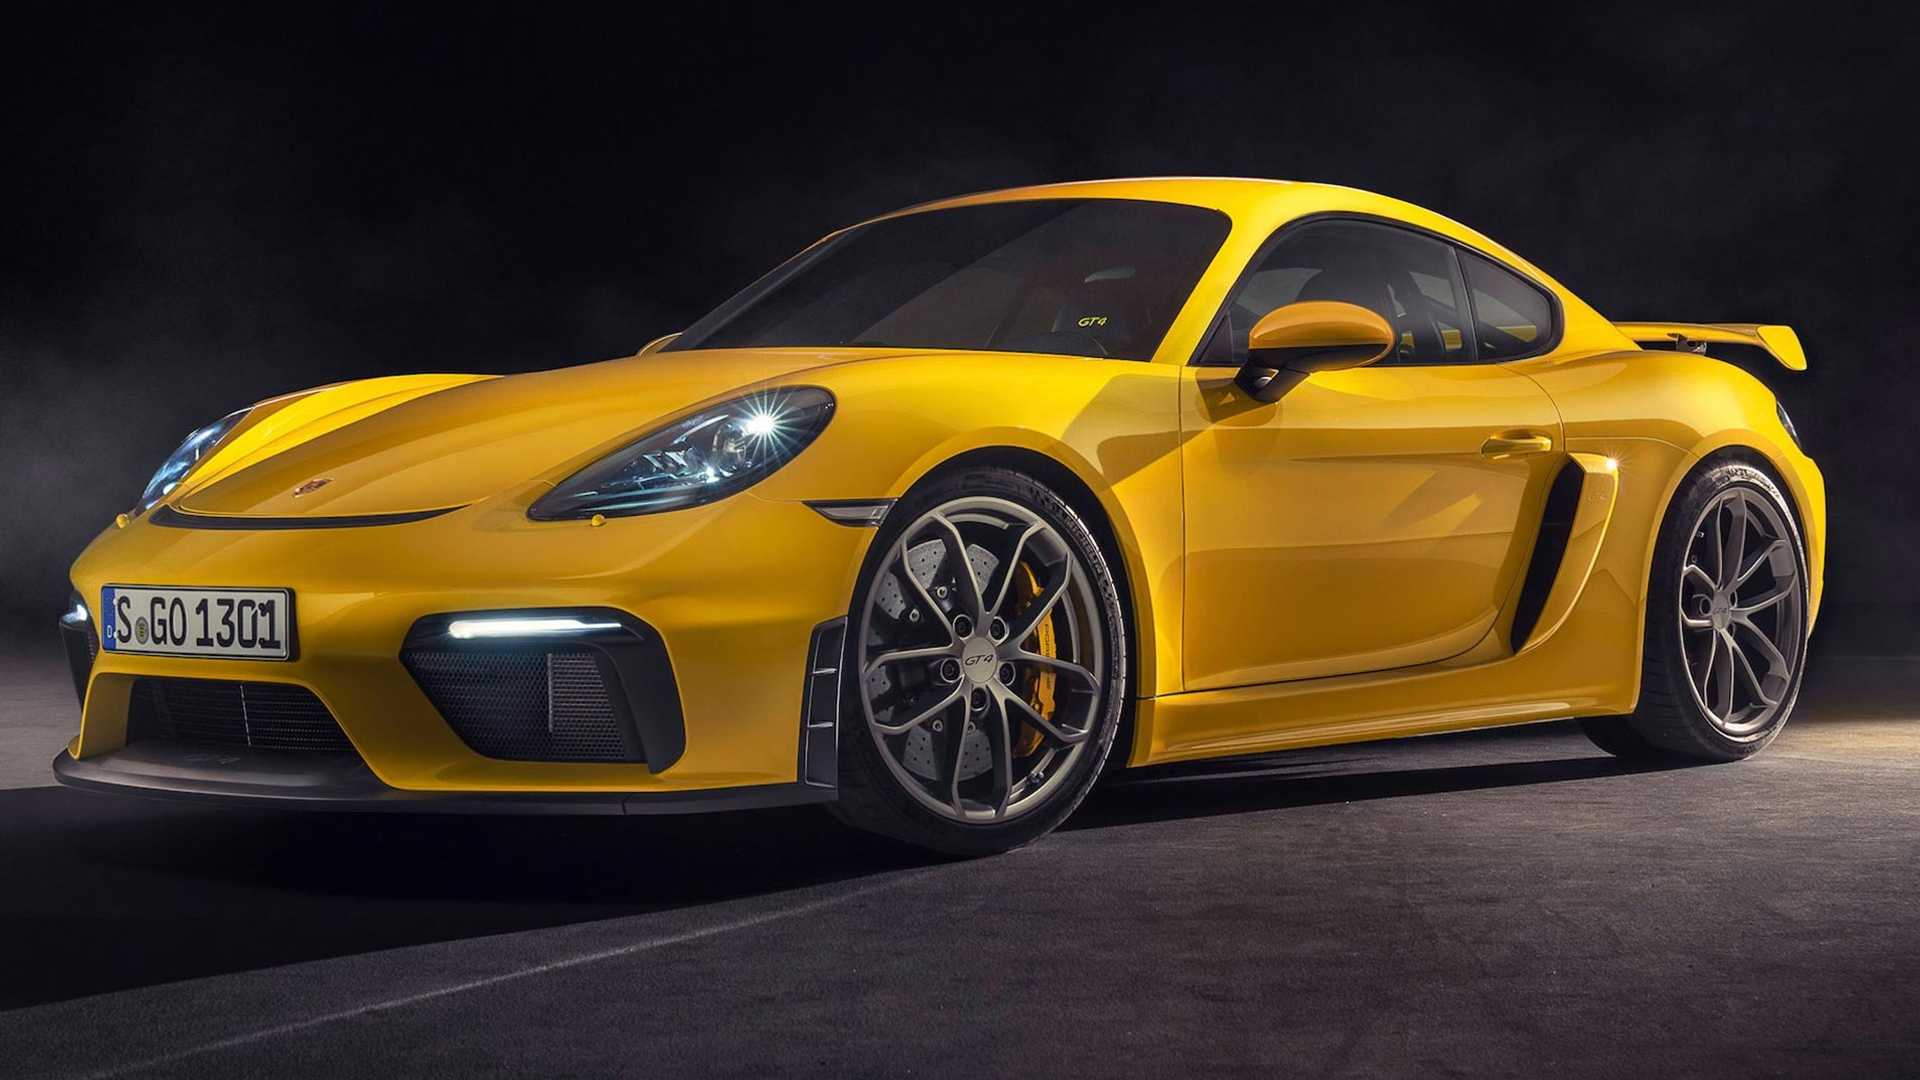 Porsche: Naturally aspirated engines, manual gearboxes to stick around